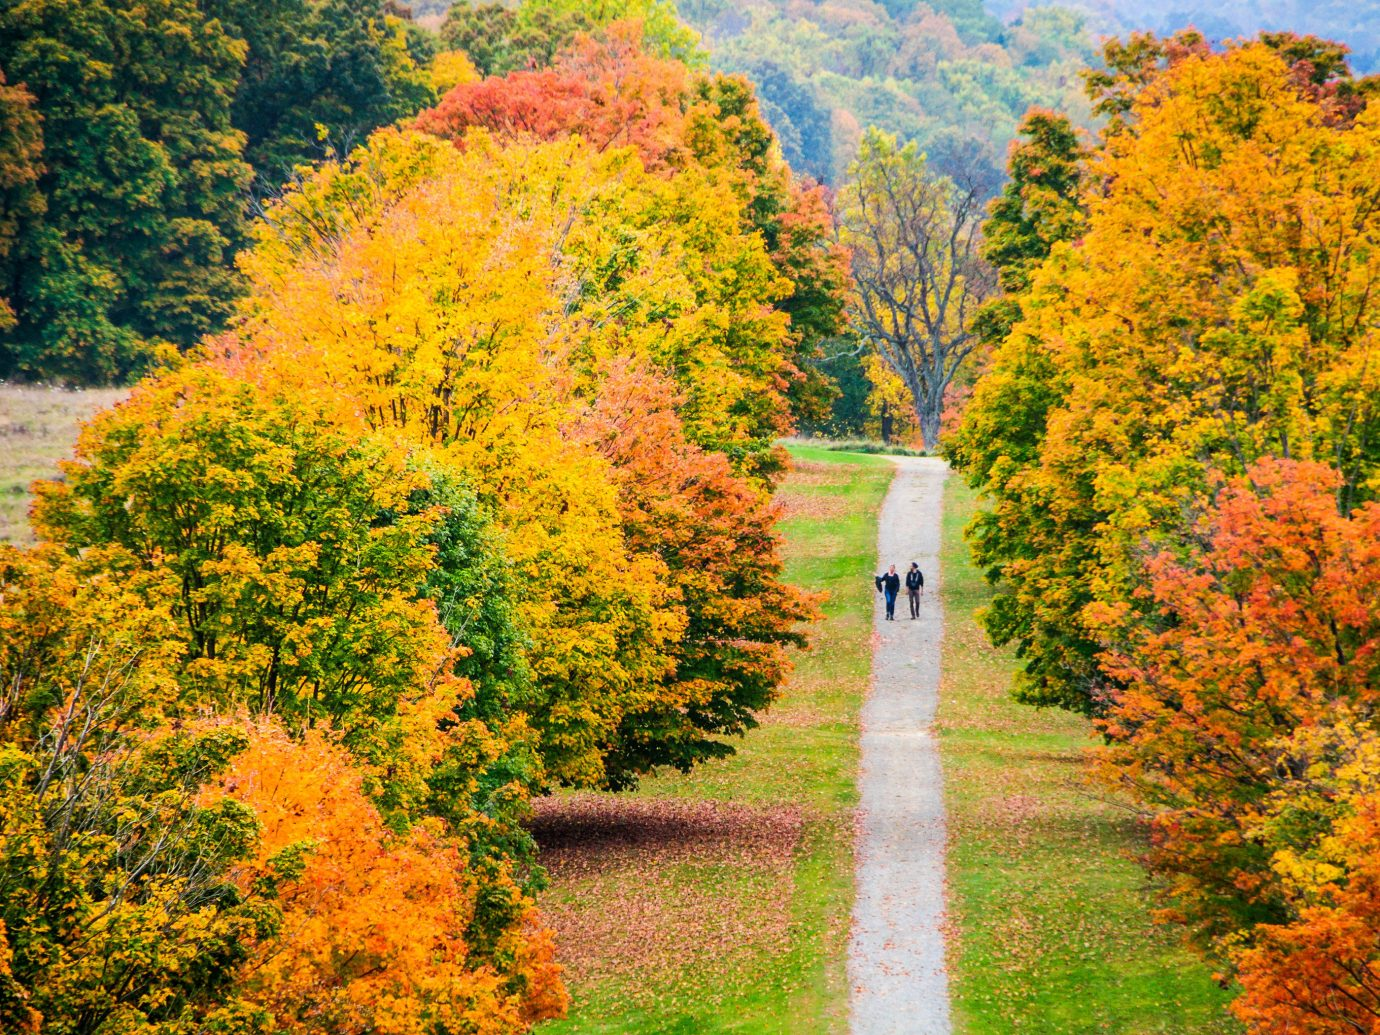 Trip Ideas tree outdoor grass autumn season leaf plant woody plant flower temperate broadleaf and mixed forest woodland shrub deciduous Forest surrounded bushes lush wooded field